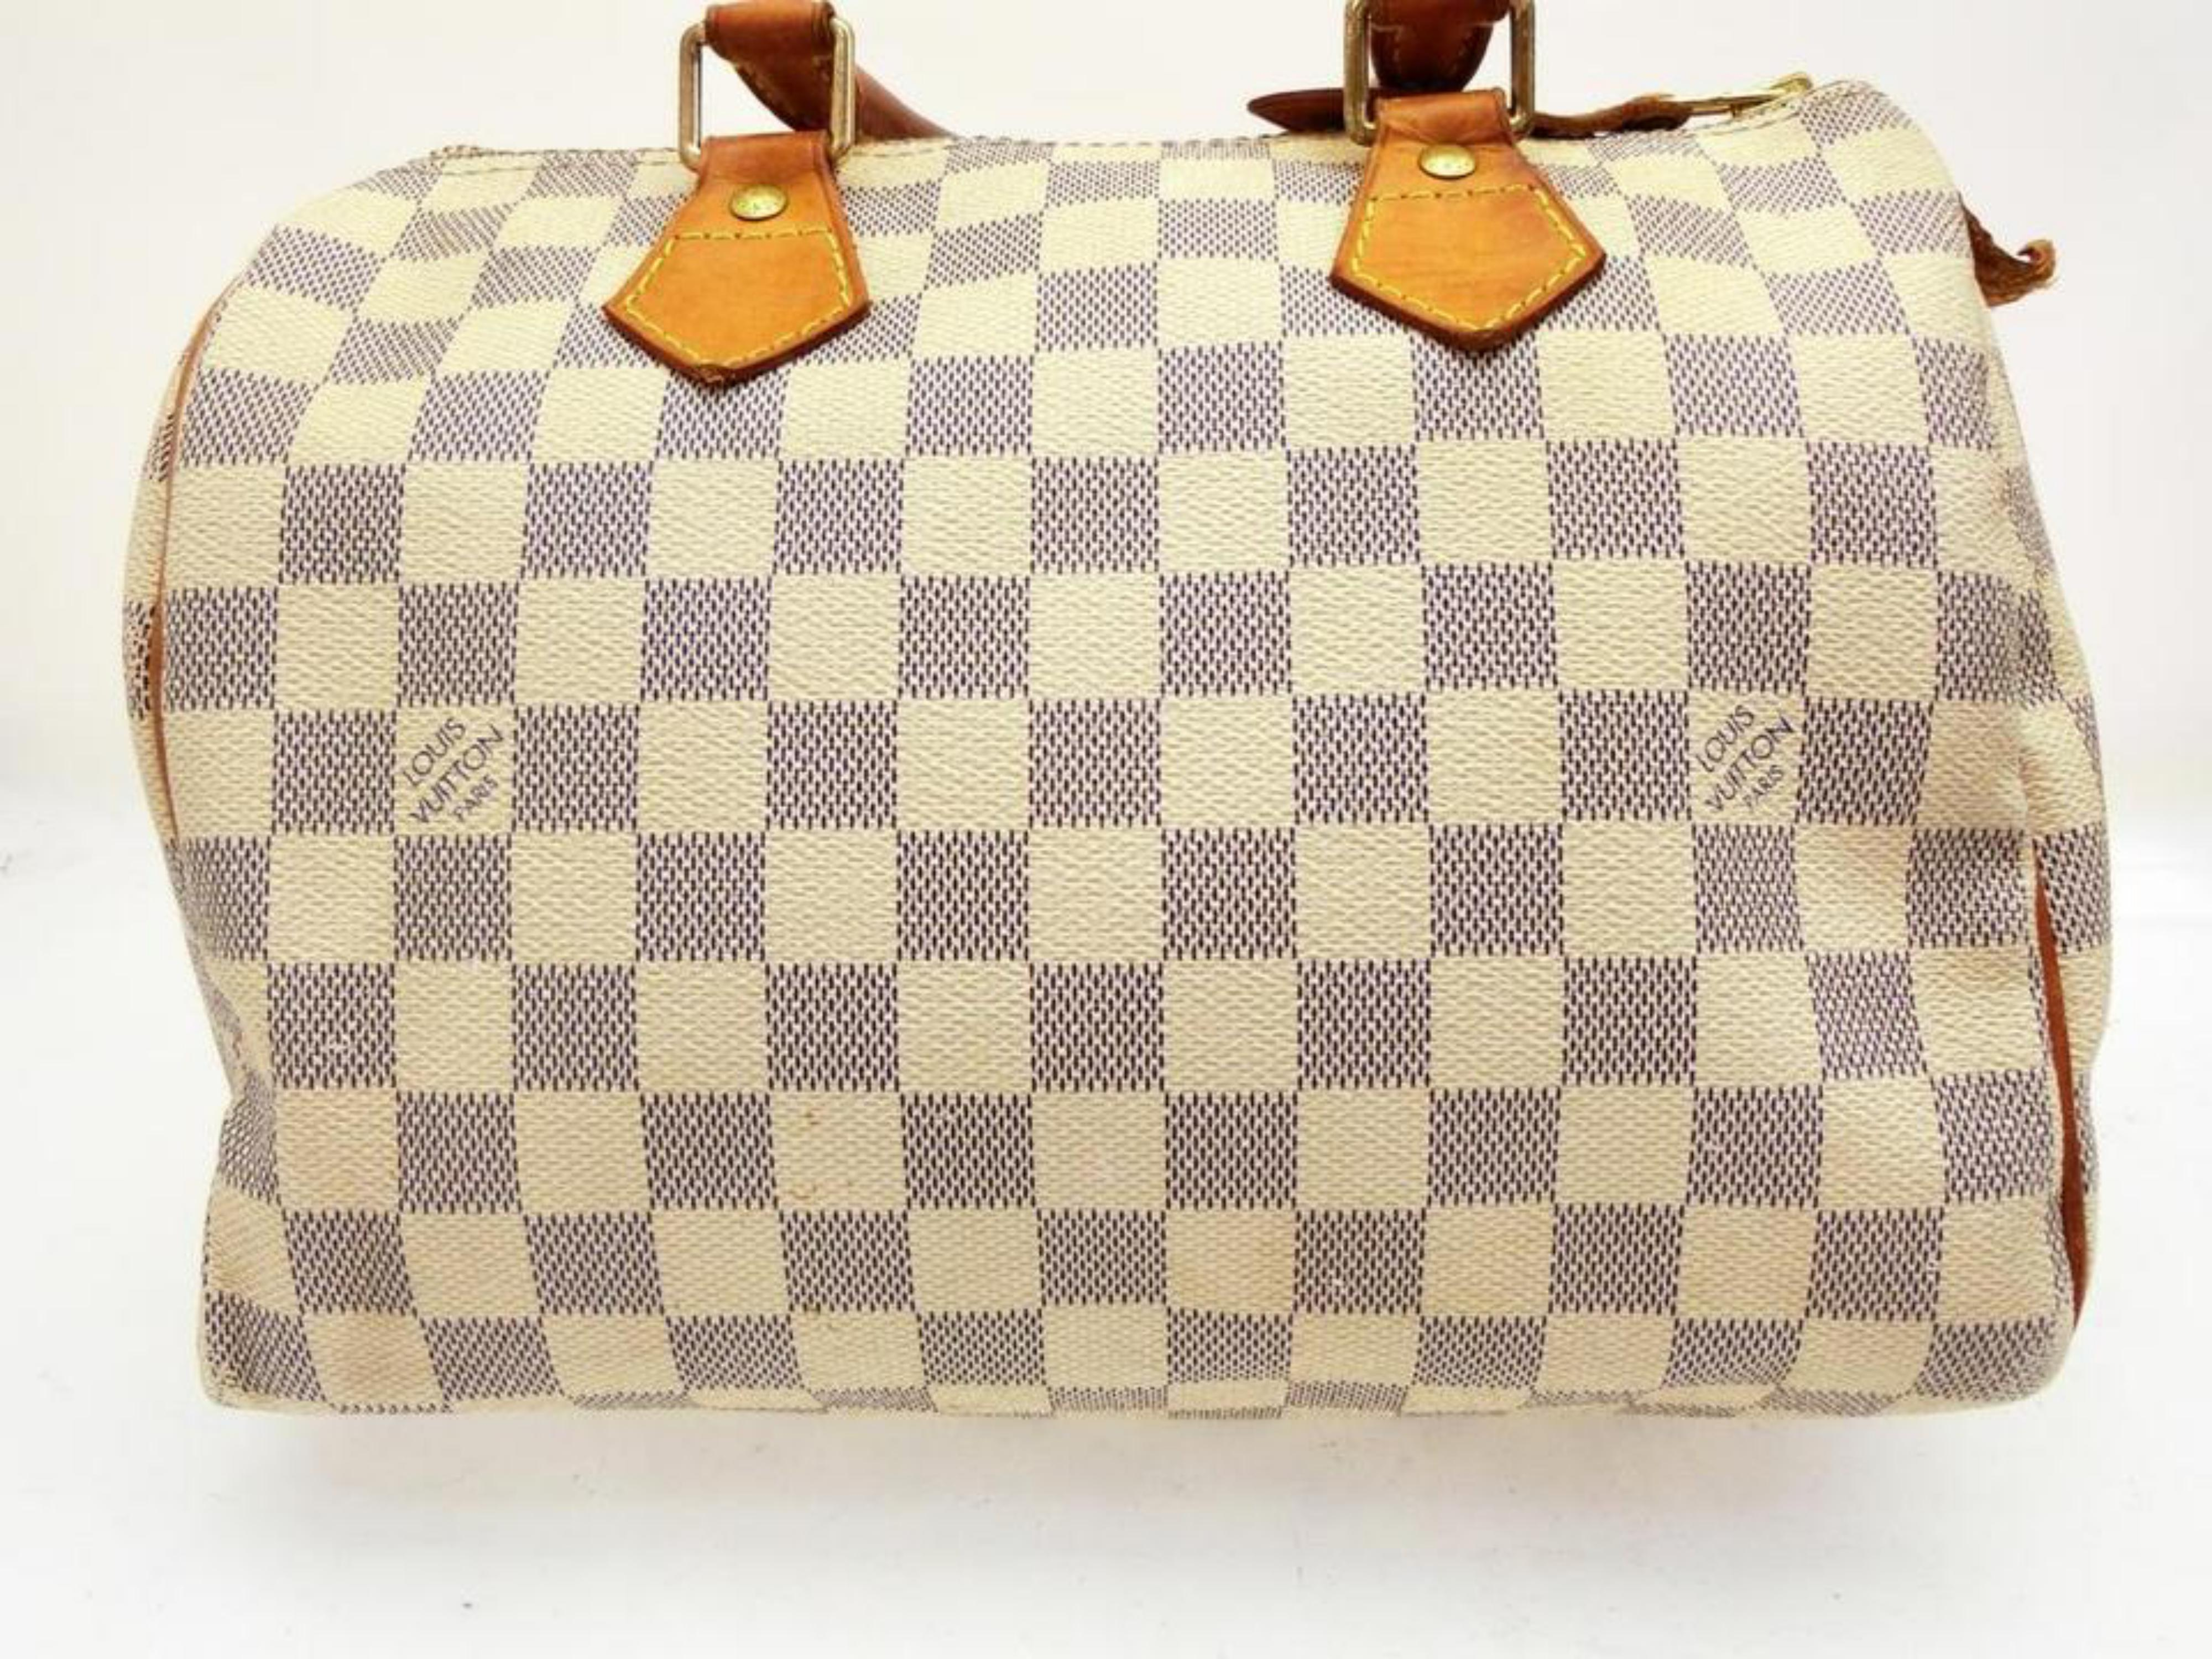 97ab0127849a Louis Vuitton Speedy Damier Azur 30 228757 White Coated Canvas Satchel For  Sale at 1stdibs